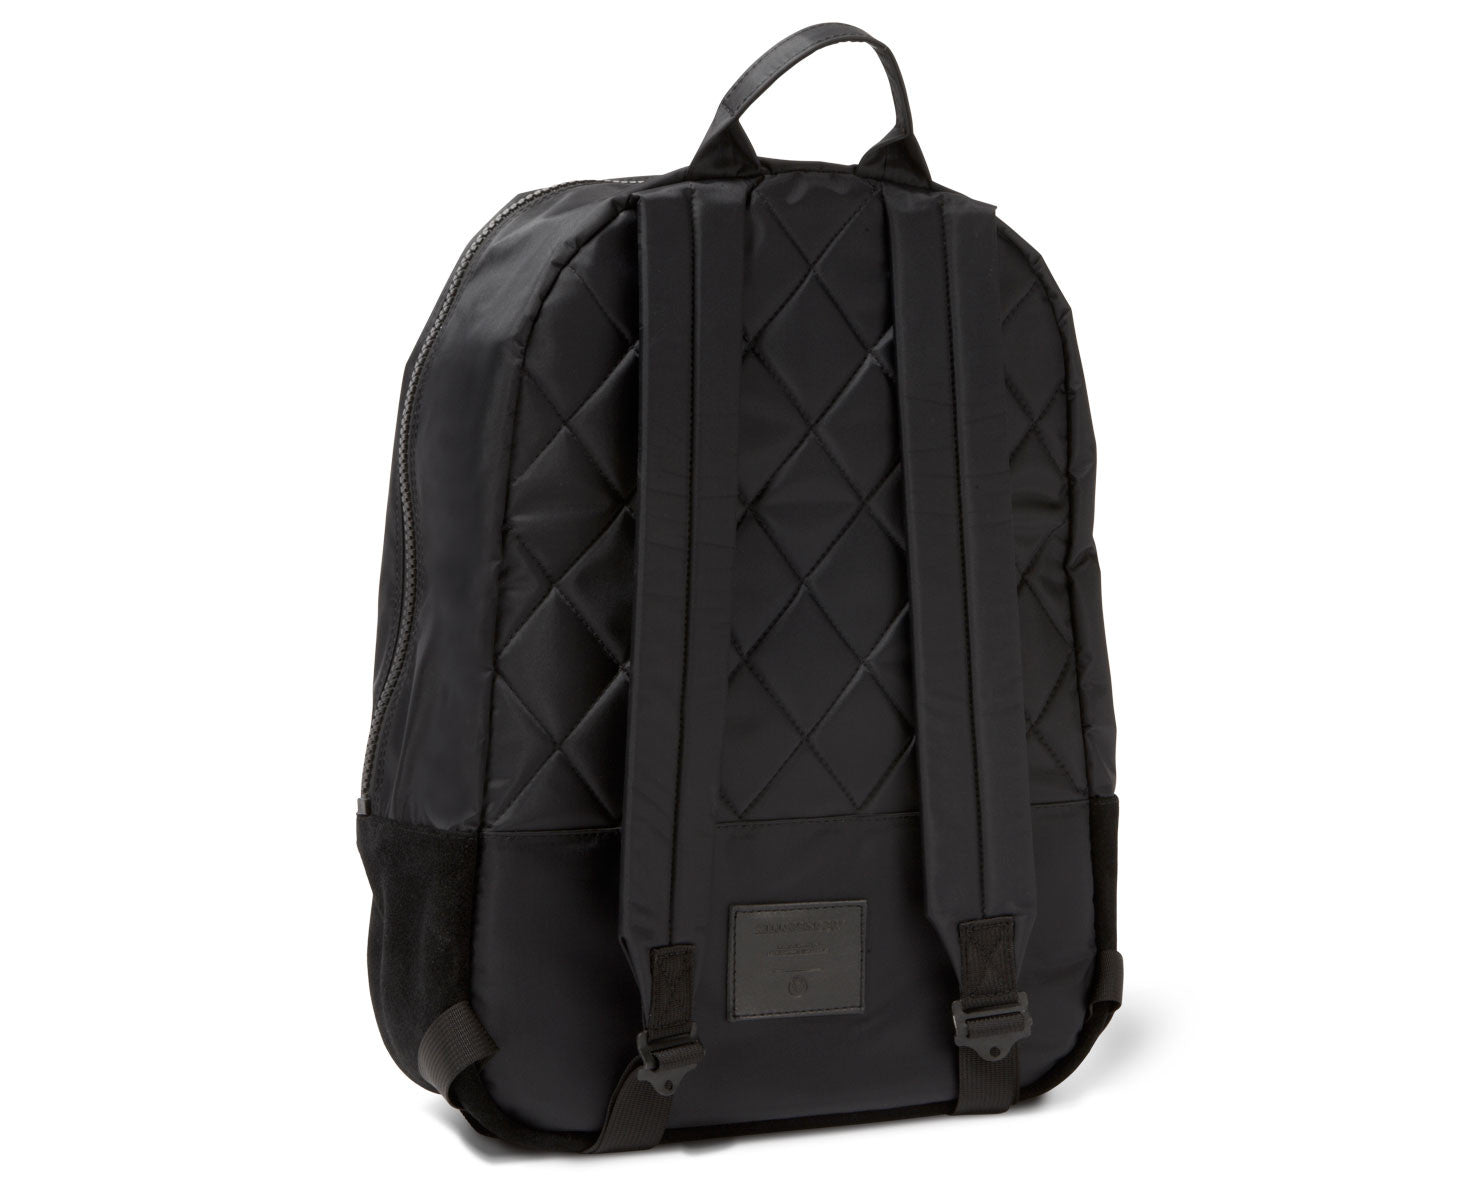 DAYPACK | KILLSPENCER® - Black Nylon